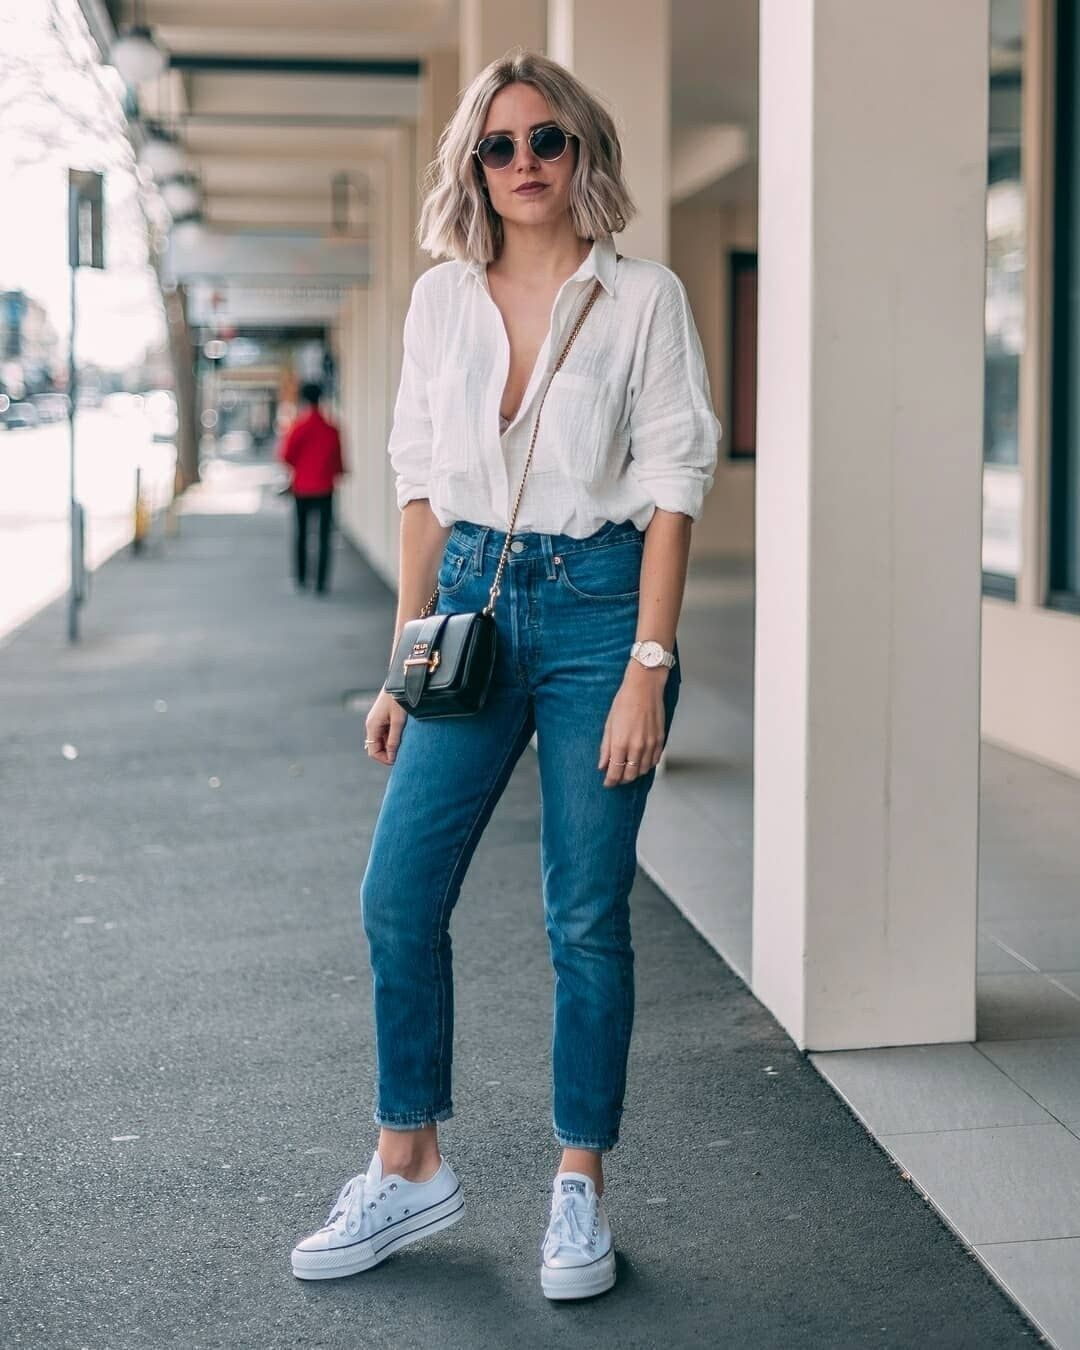 13 Casual Outfits With Denim Jeans for Spring 13  Outfit